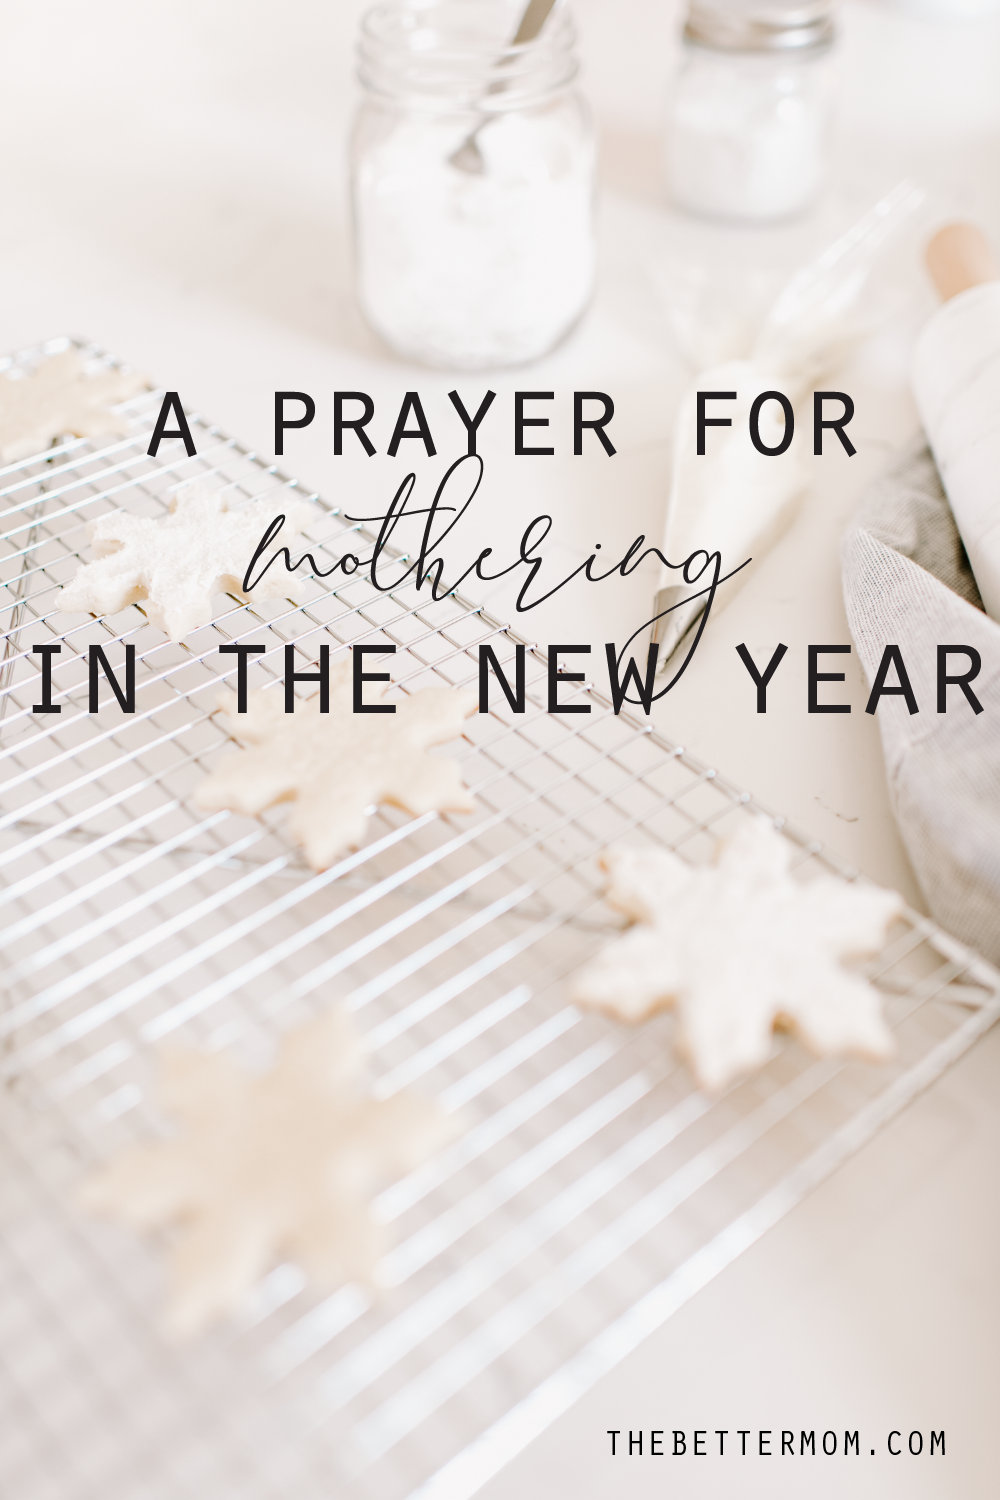 As we enter the #NewYear, it is time for a fresh start. It's that season where we often reflect and refocus. During a time of the year when people resolve to lose weight, spend less, stop eating chocolate, and get out of bed earlier, what about resolving to be a different kind of mom this year? Not a perfect #mom, but a better mom. By God's grace, a mom who is recommitted to the role God has called you to. . #Motherhood is not easy. So as we start a new year, how about we start with seeking God's help. . Join me on the blog as I share a #prayer for mothering in the new year.